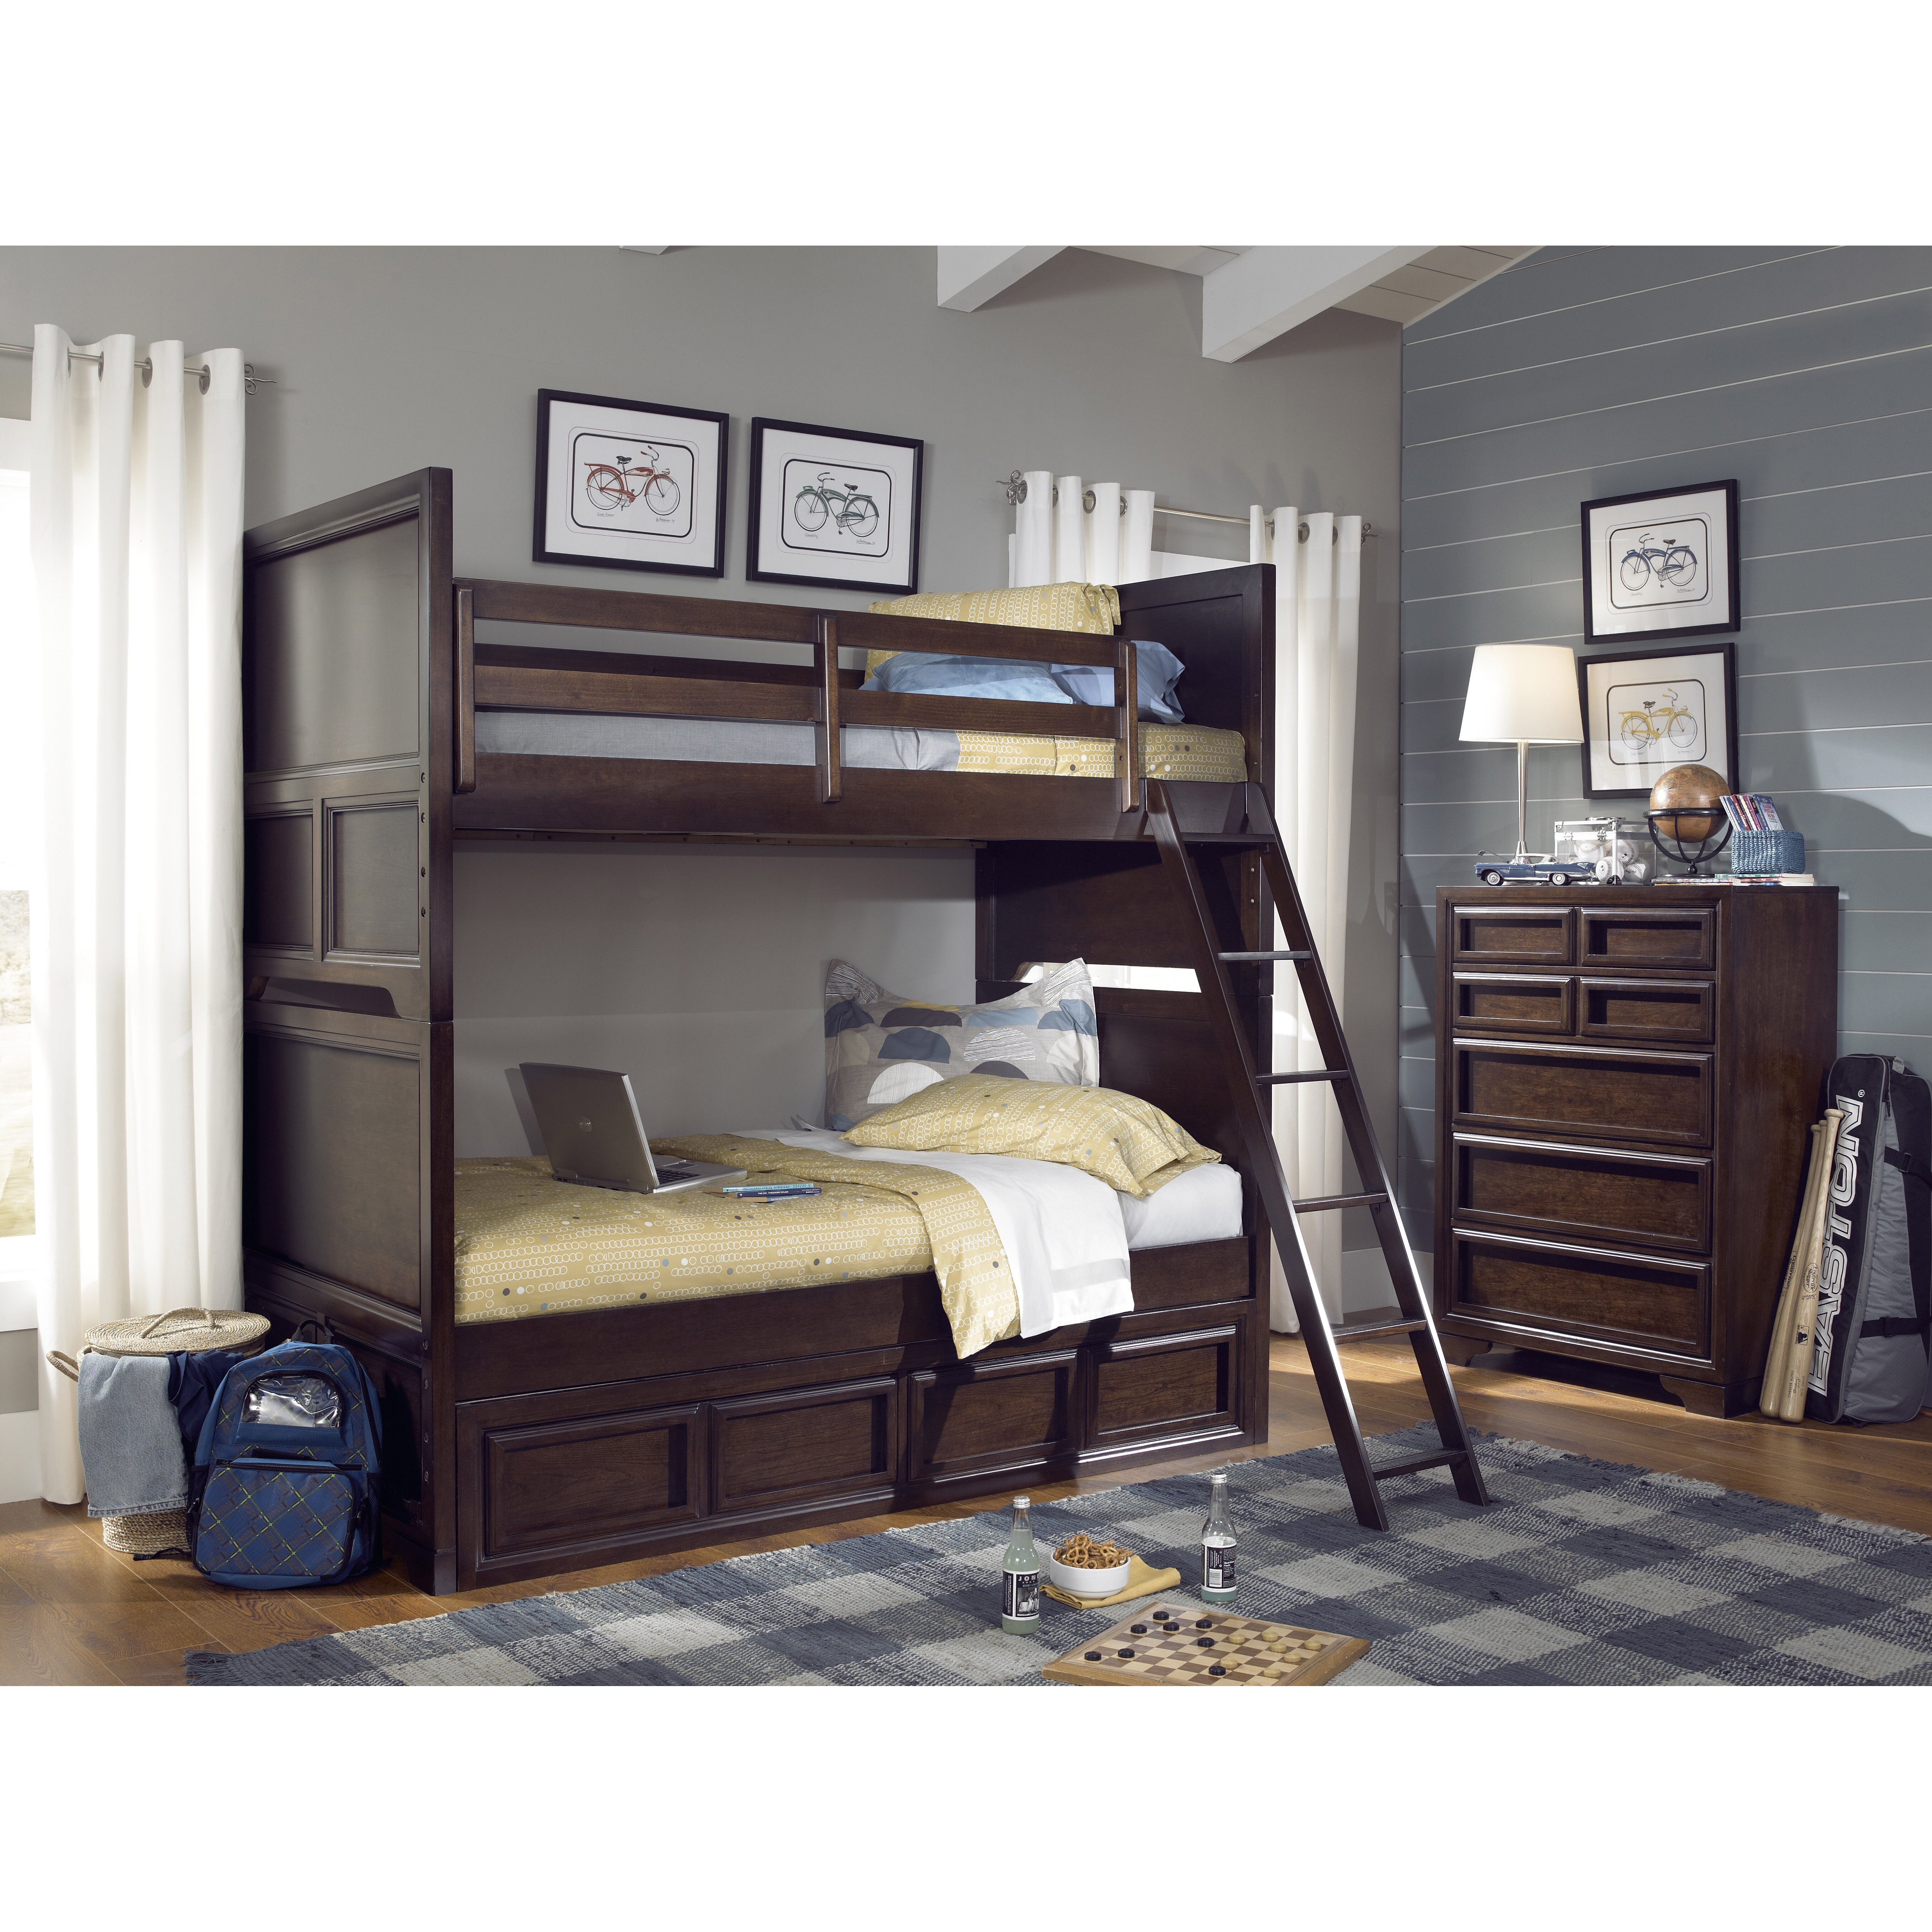 lc kids benchmark twin over twin standard bunk bed with underbed storage drawer. Black Bedroom Furniture Sets. Home Design Ideas